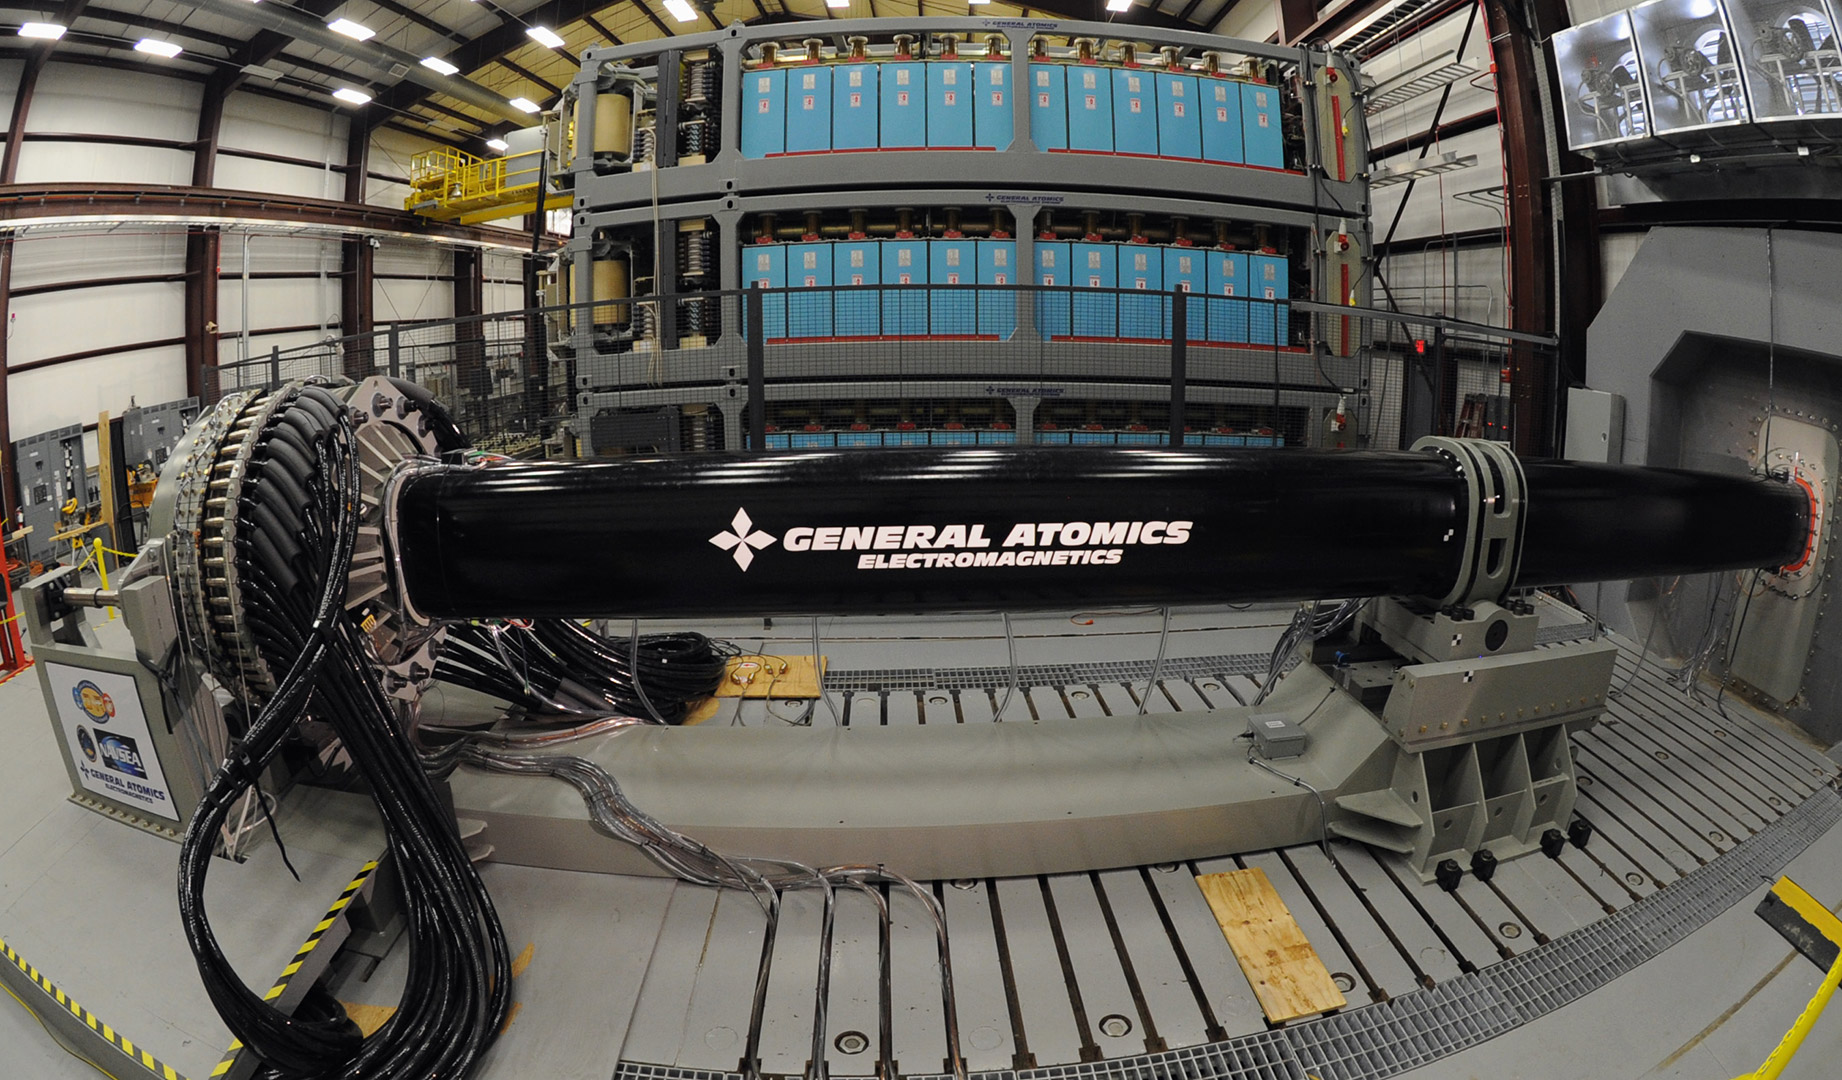 Navy Plans First Live Test Of Electromagnetic Railgun On Ship In Basic Circuit Board Diagram Prototypes Pistol The Us Announced Today Apr 7 2014 That It To Install And A Prototype Em Aboard Joint High Speed